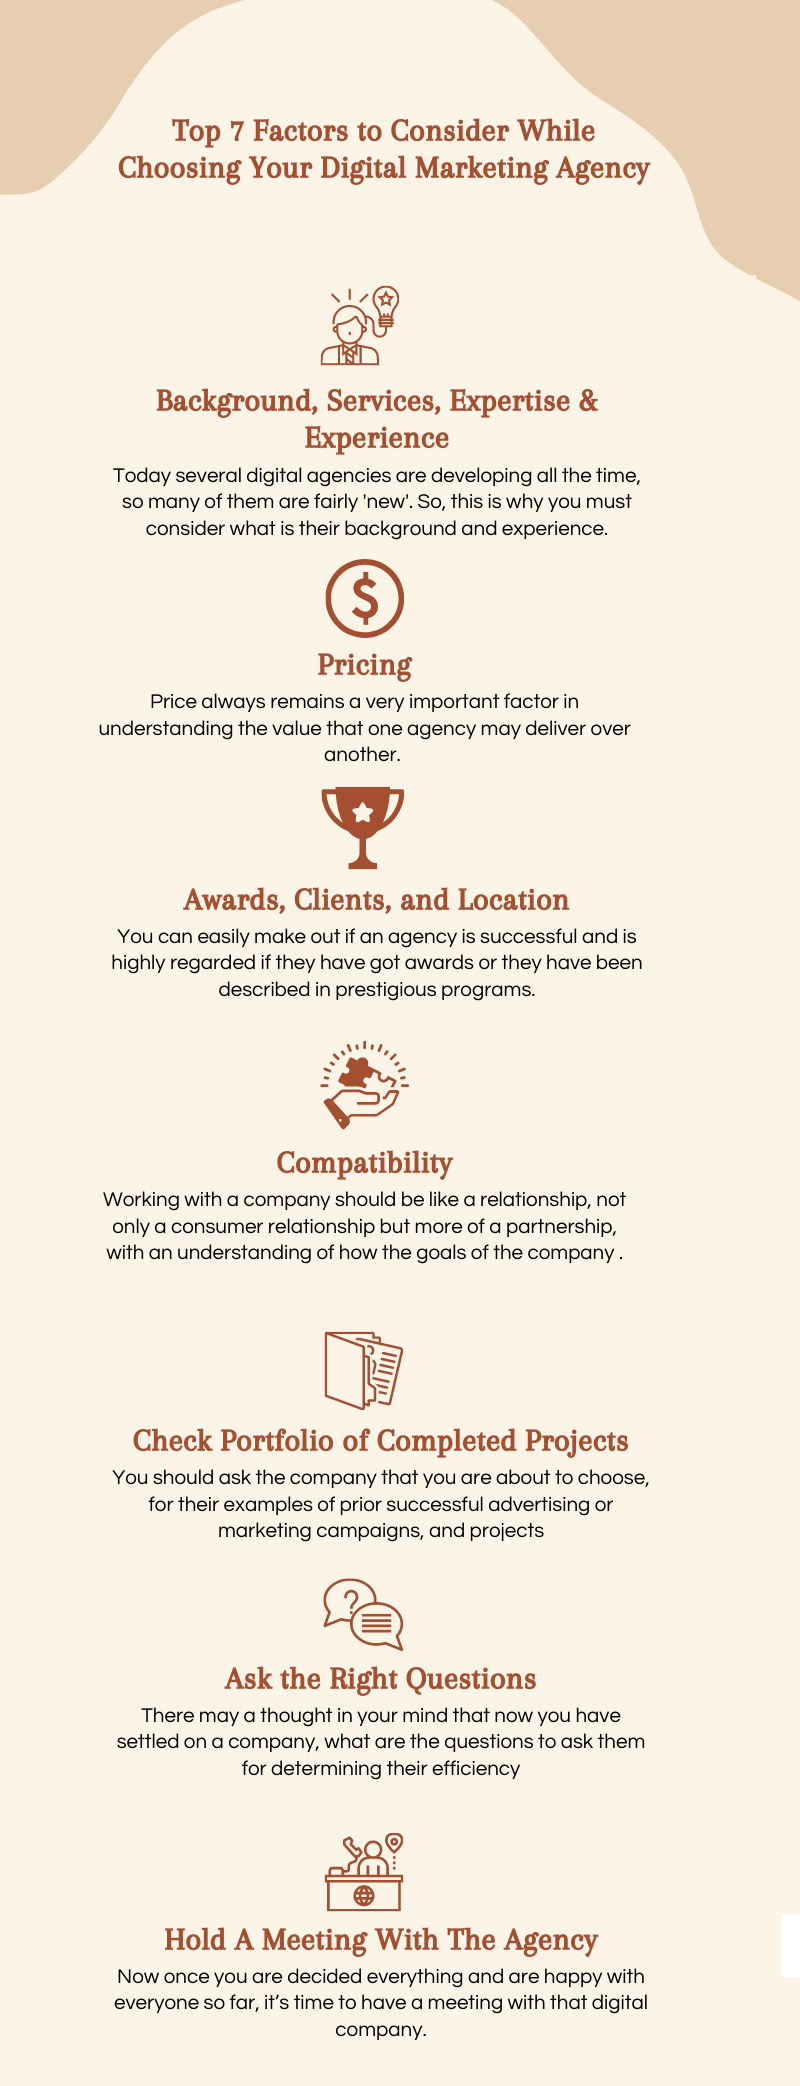 Top 7 Factors to Consider While Choosing Your Digital Marketing Agency infographic